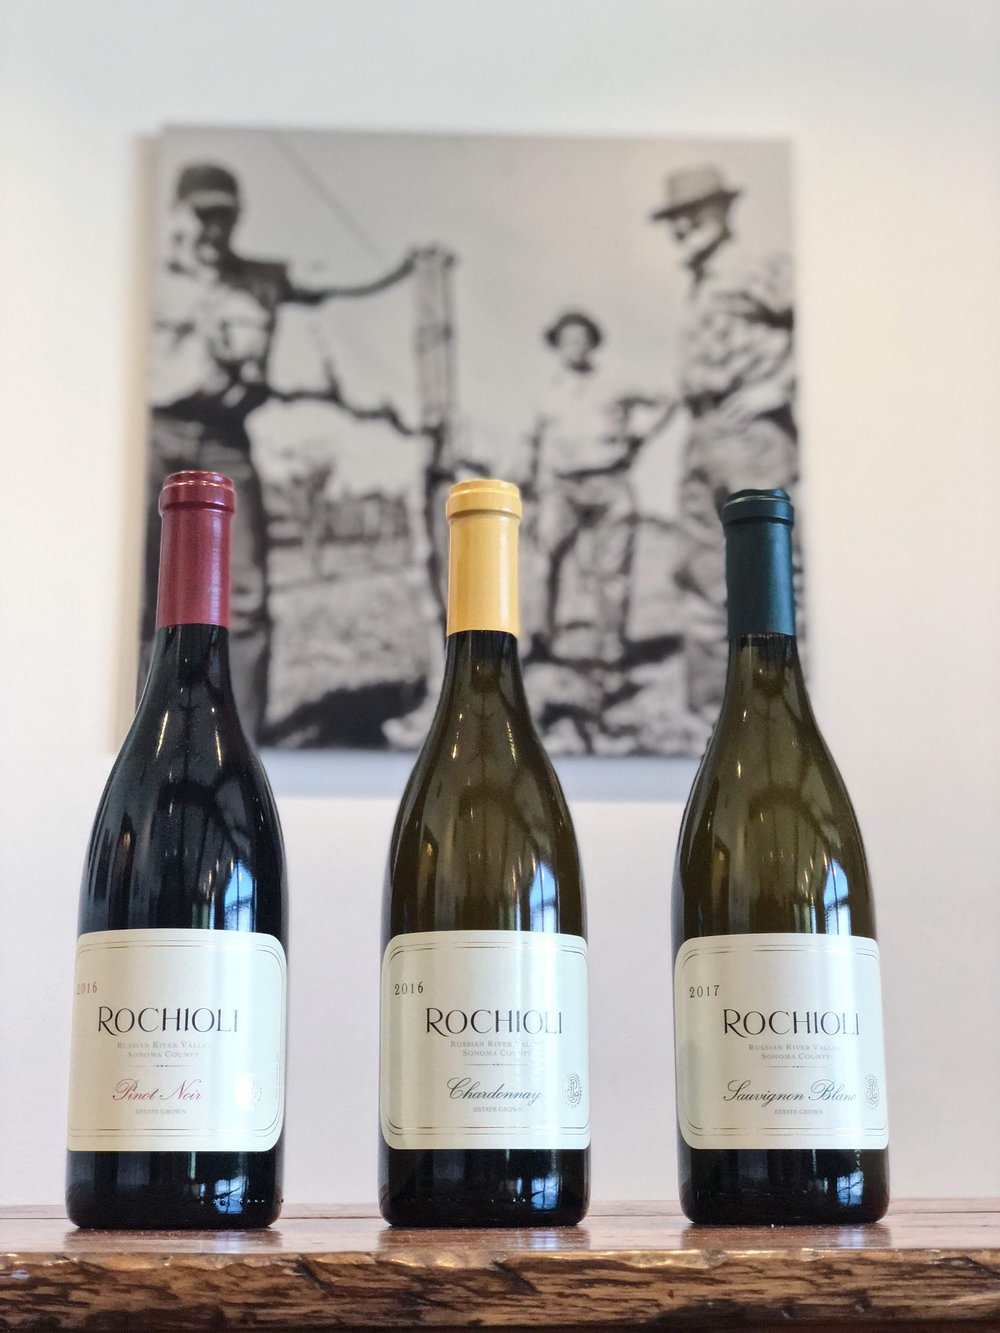 Rochioli Pinot Noir and Chardonnay Wines